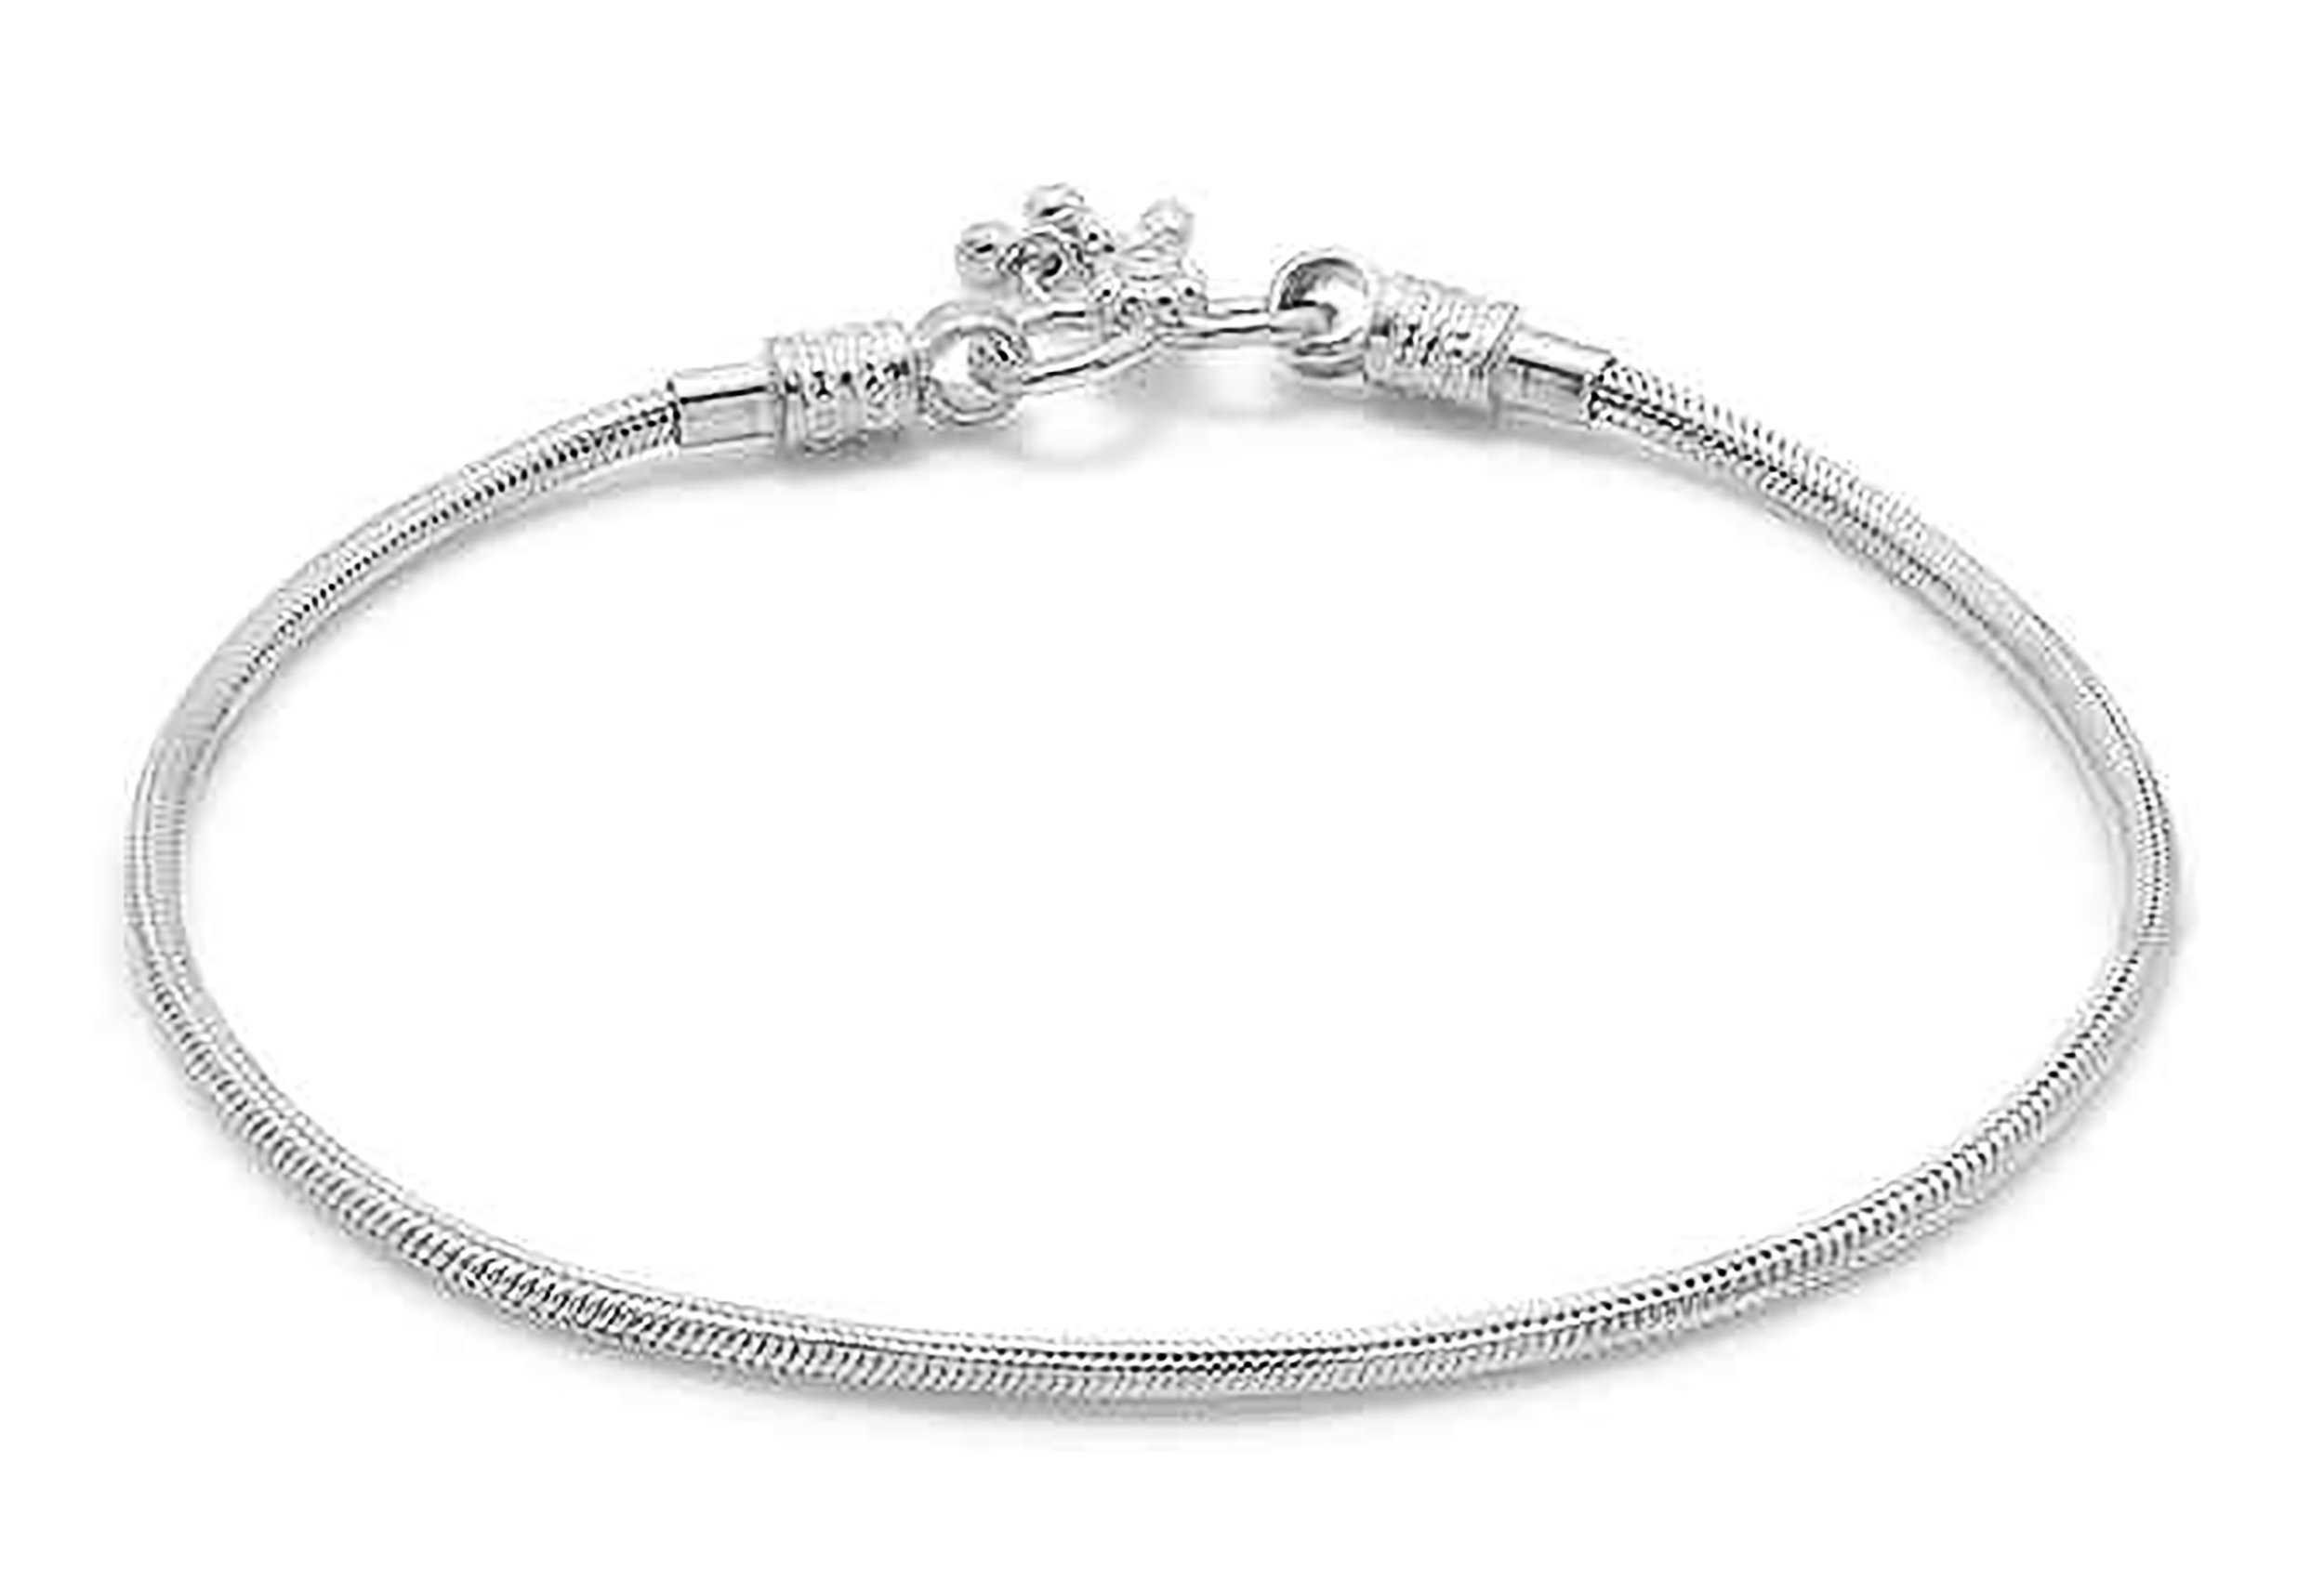 D&D Crafts Sterling Silver Sturdy Look Anklets For Girls, Women by D&D (Image #2)